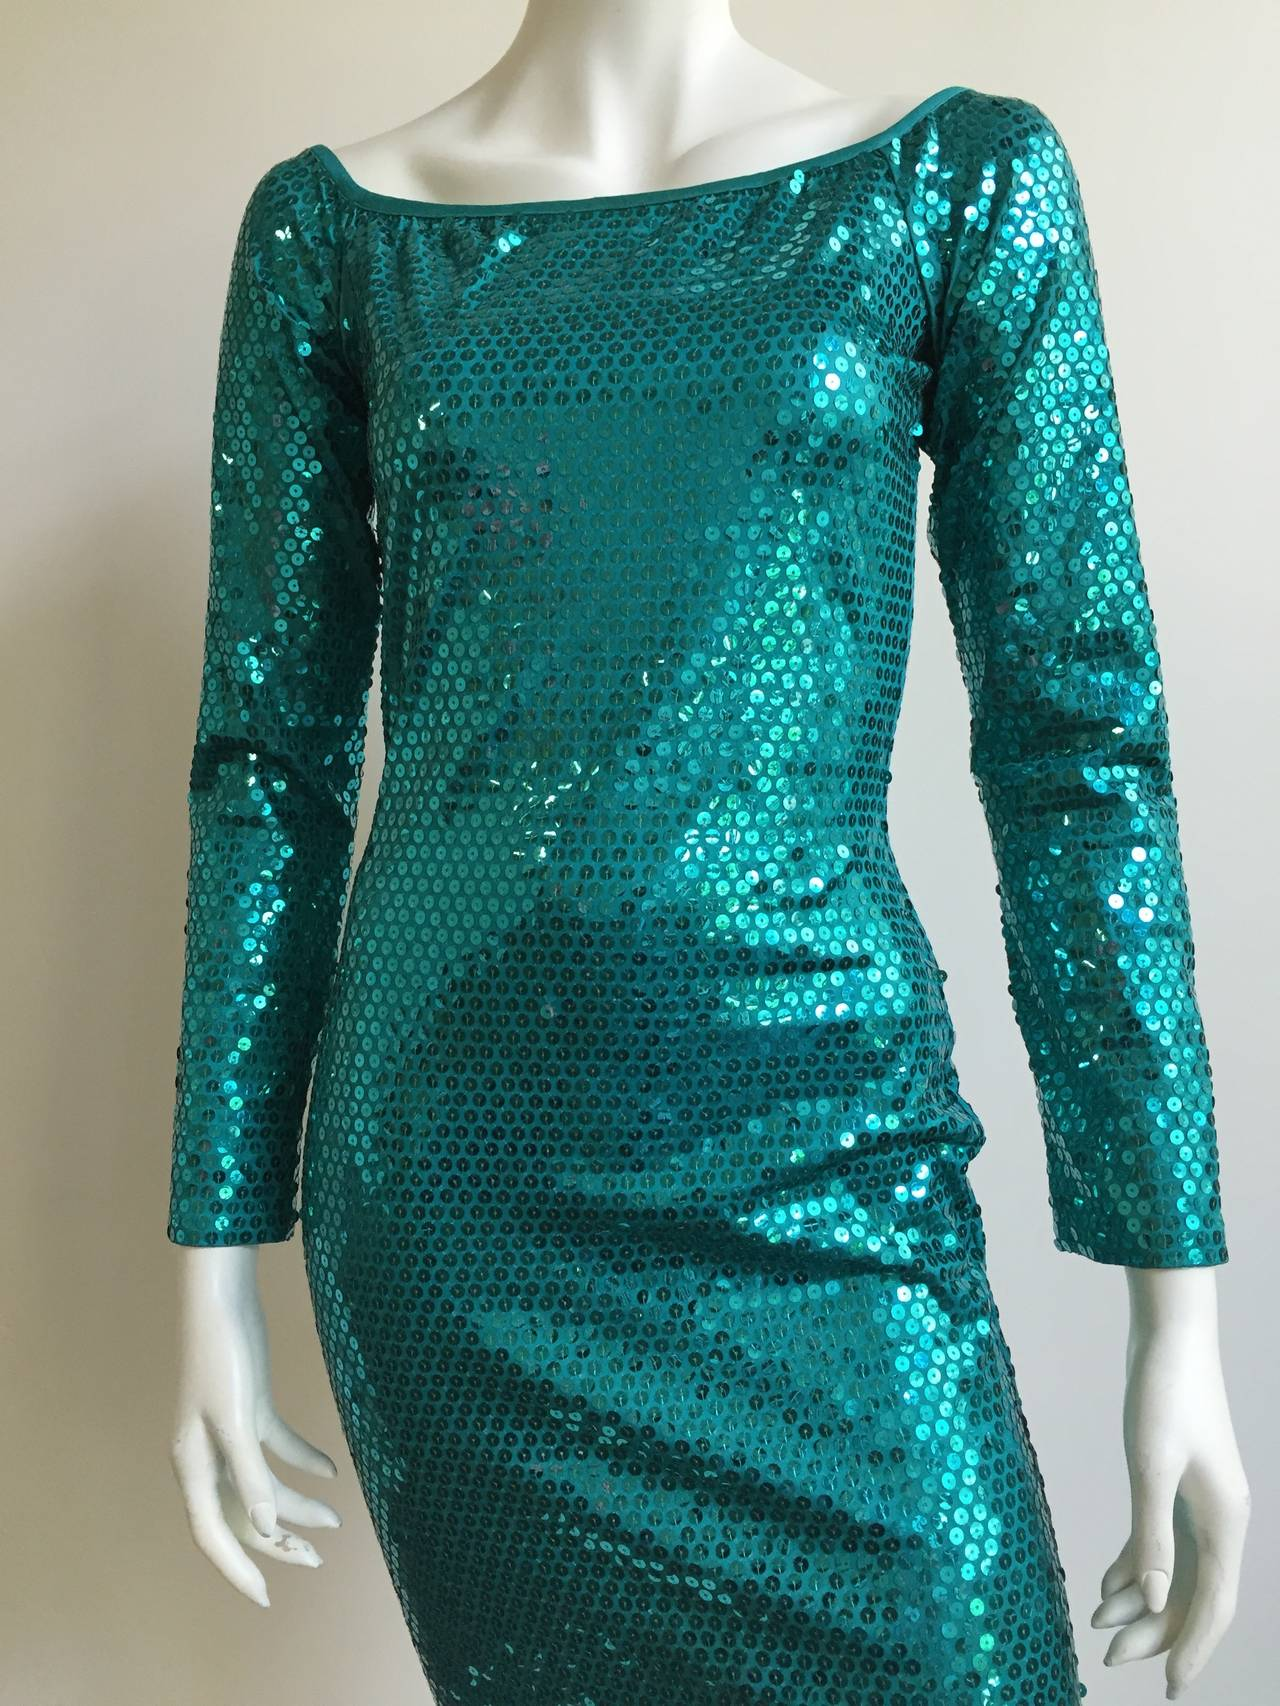 Patrick Kelly Paris 1980s turquoise evening dress size 4 ( please see & use measurements). This dress is from the collection of Carol Martin who was Patrick Kelly's friend & model in the 70s & 80s. During their long friendship Patrick Kelly gave